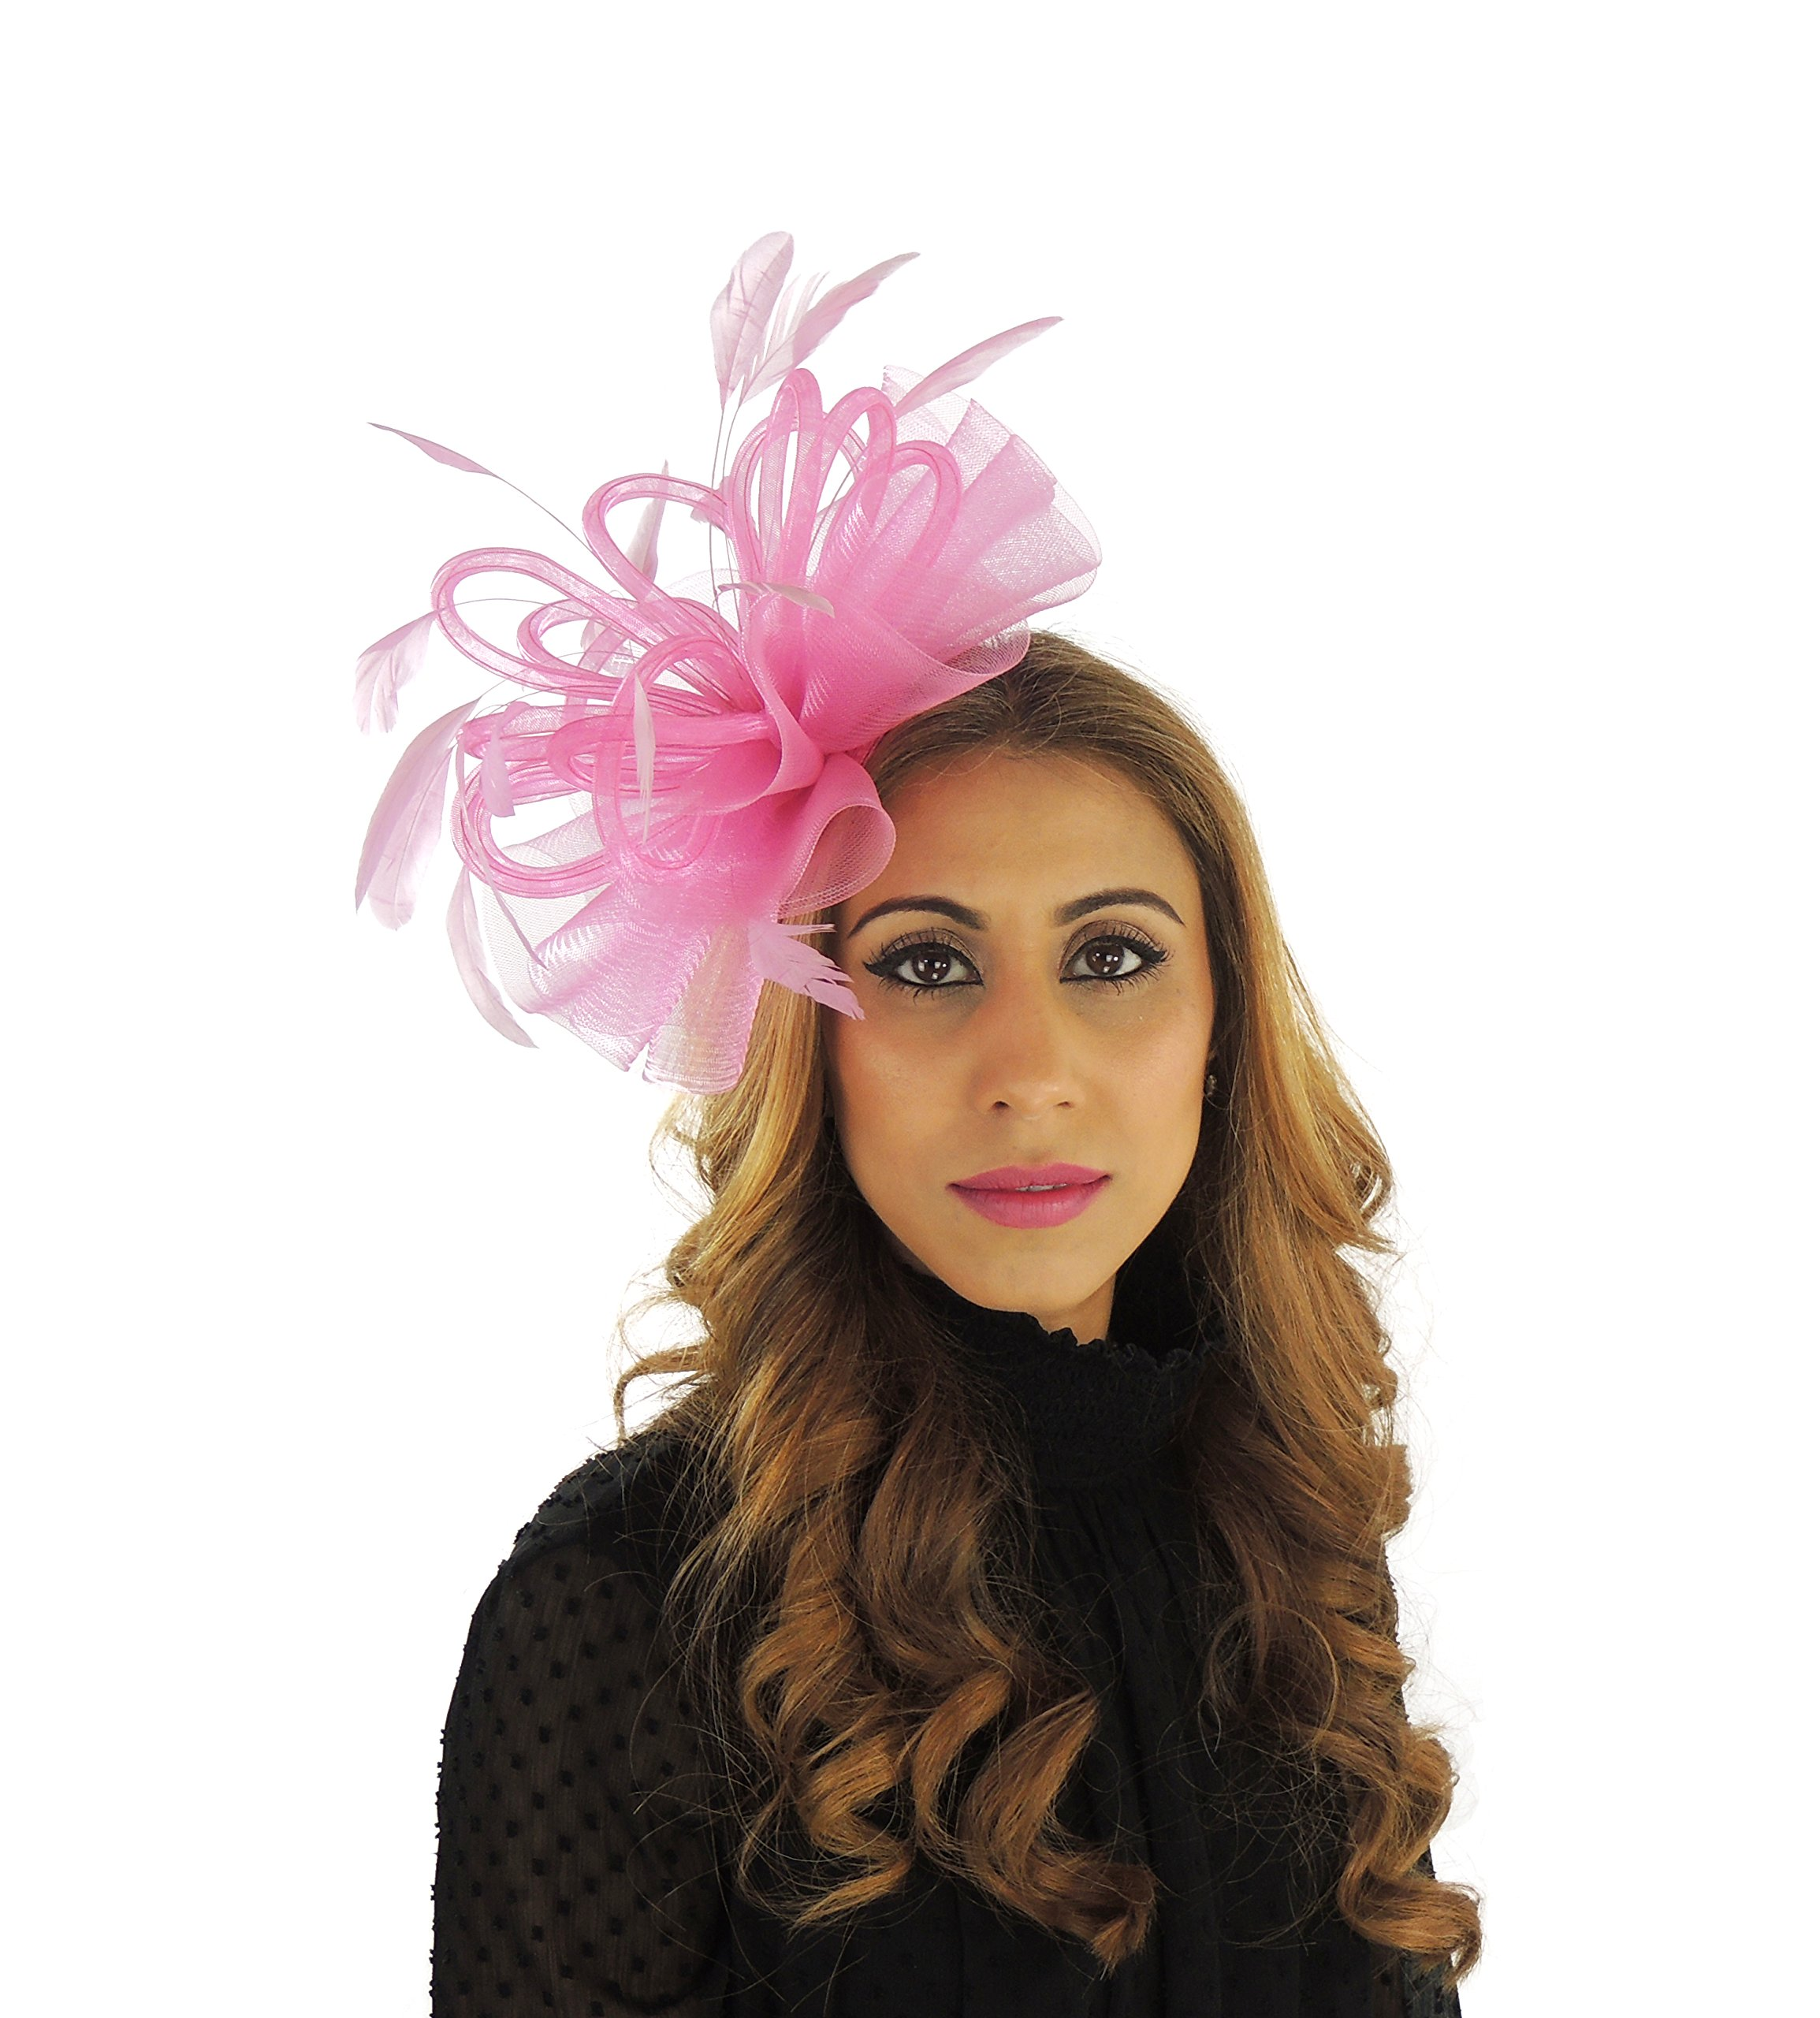 Hats By Cressida Ladies Wedding Races Ascot Derby Fascinator Headband Hot Pink by Hats By Cressida